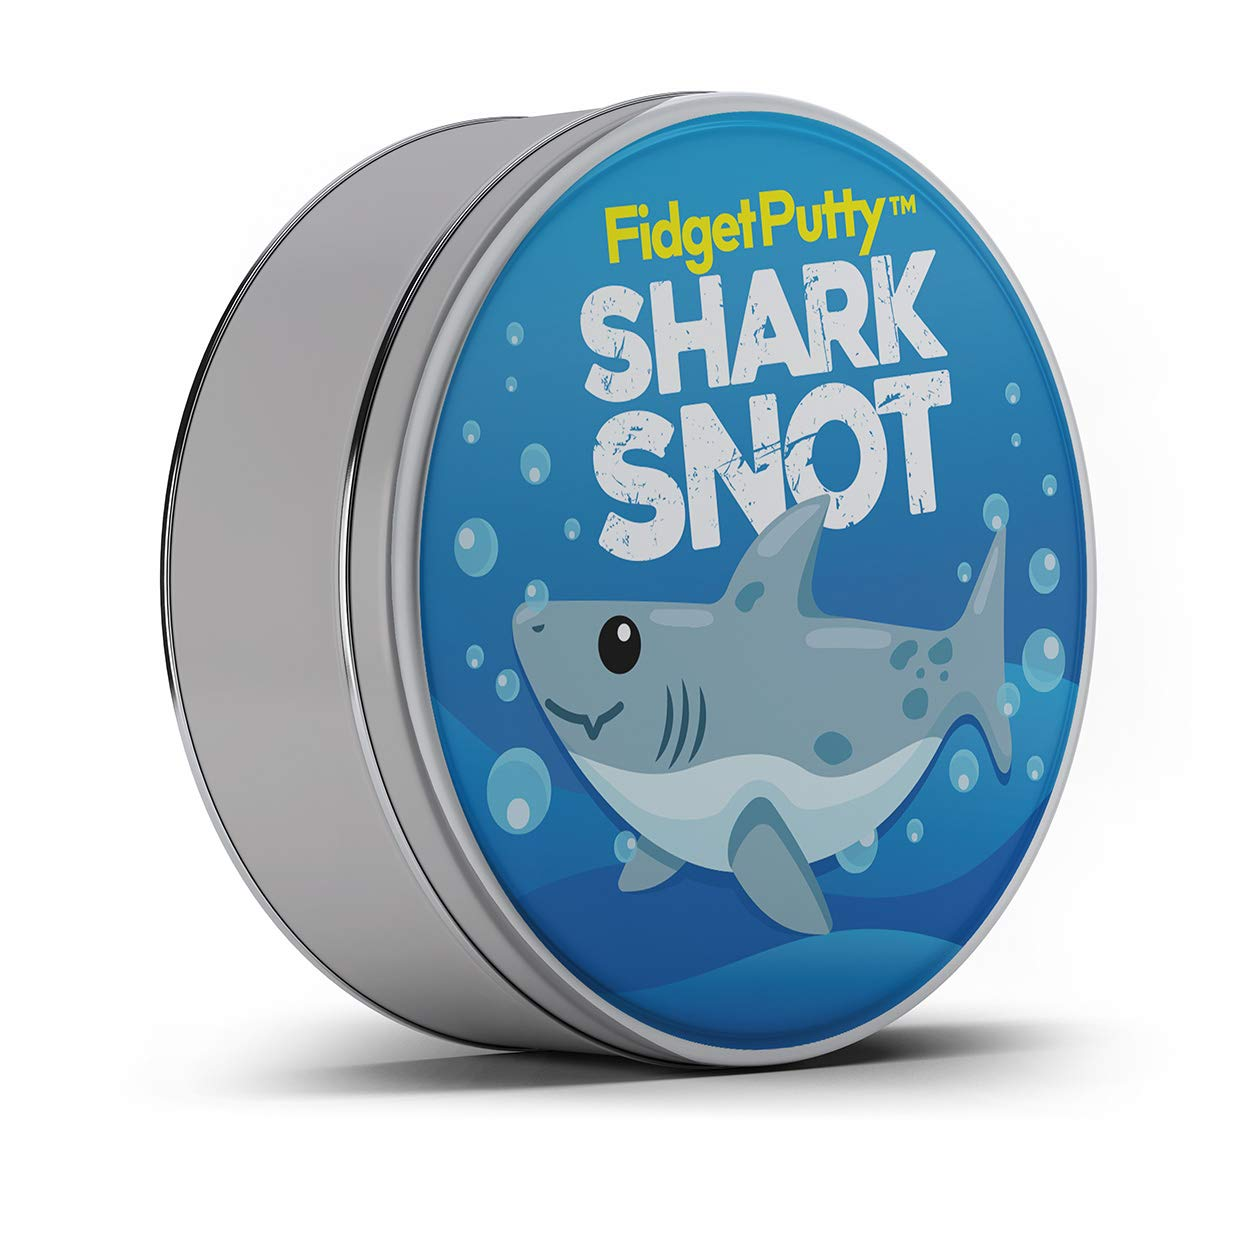 GearsOut Shark Snot Fidget Putty Stress Relief Cool Shark Ideas for Kids Stocking Stuffers for Boys and Girls Weird White Elephant Ideas Fidget Toys Blue Therapy Putty